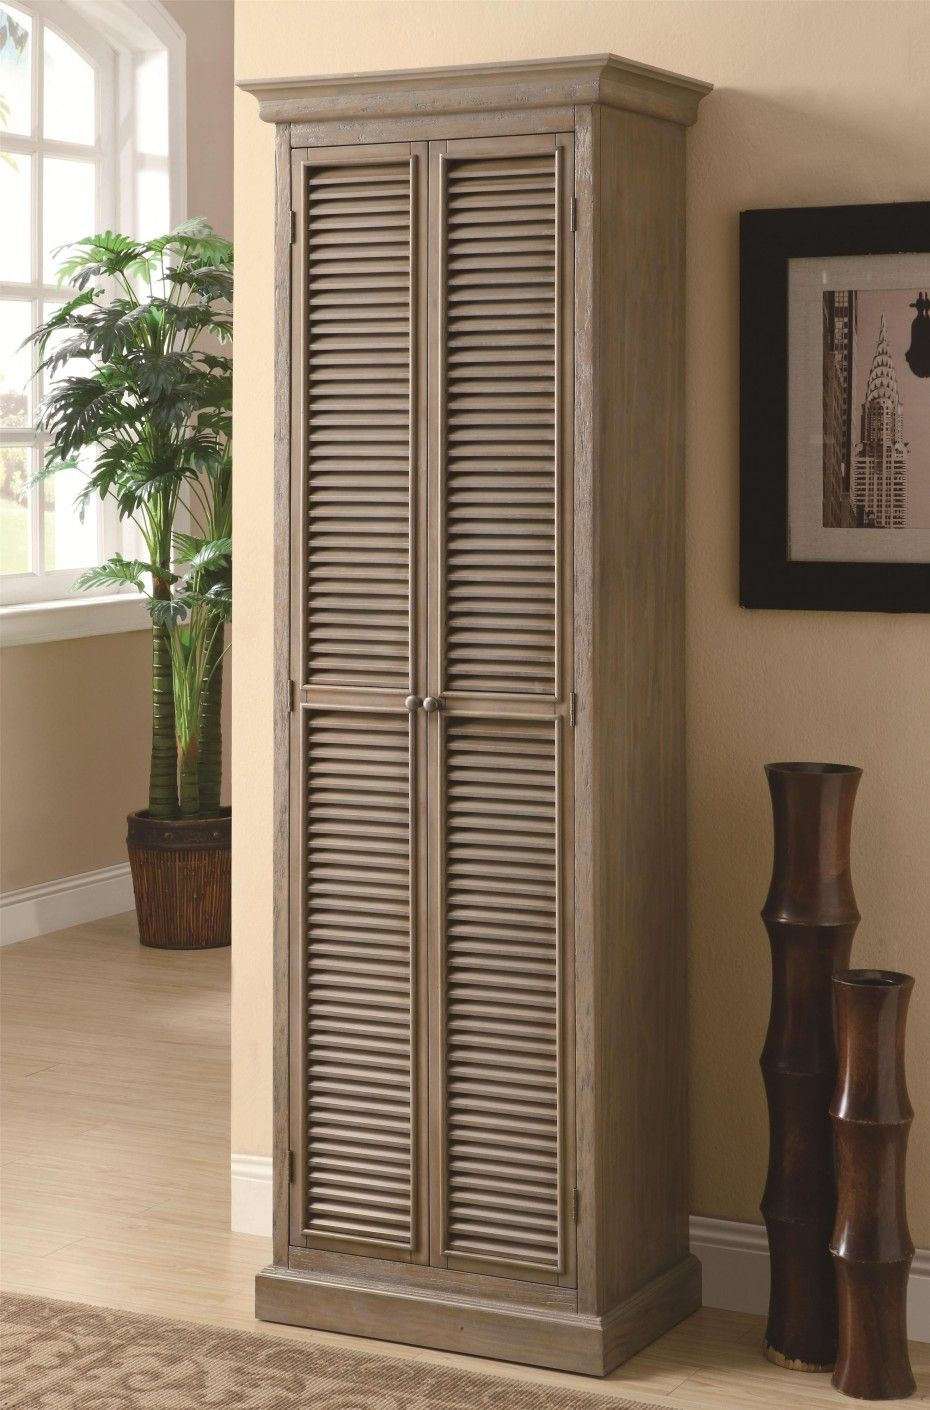 Le Meilleur Unpolished Shutter Door Tall Storage Cabinet Placed On Ce Mois Ci